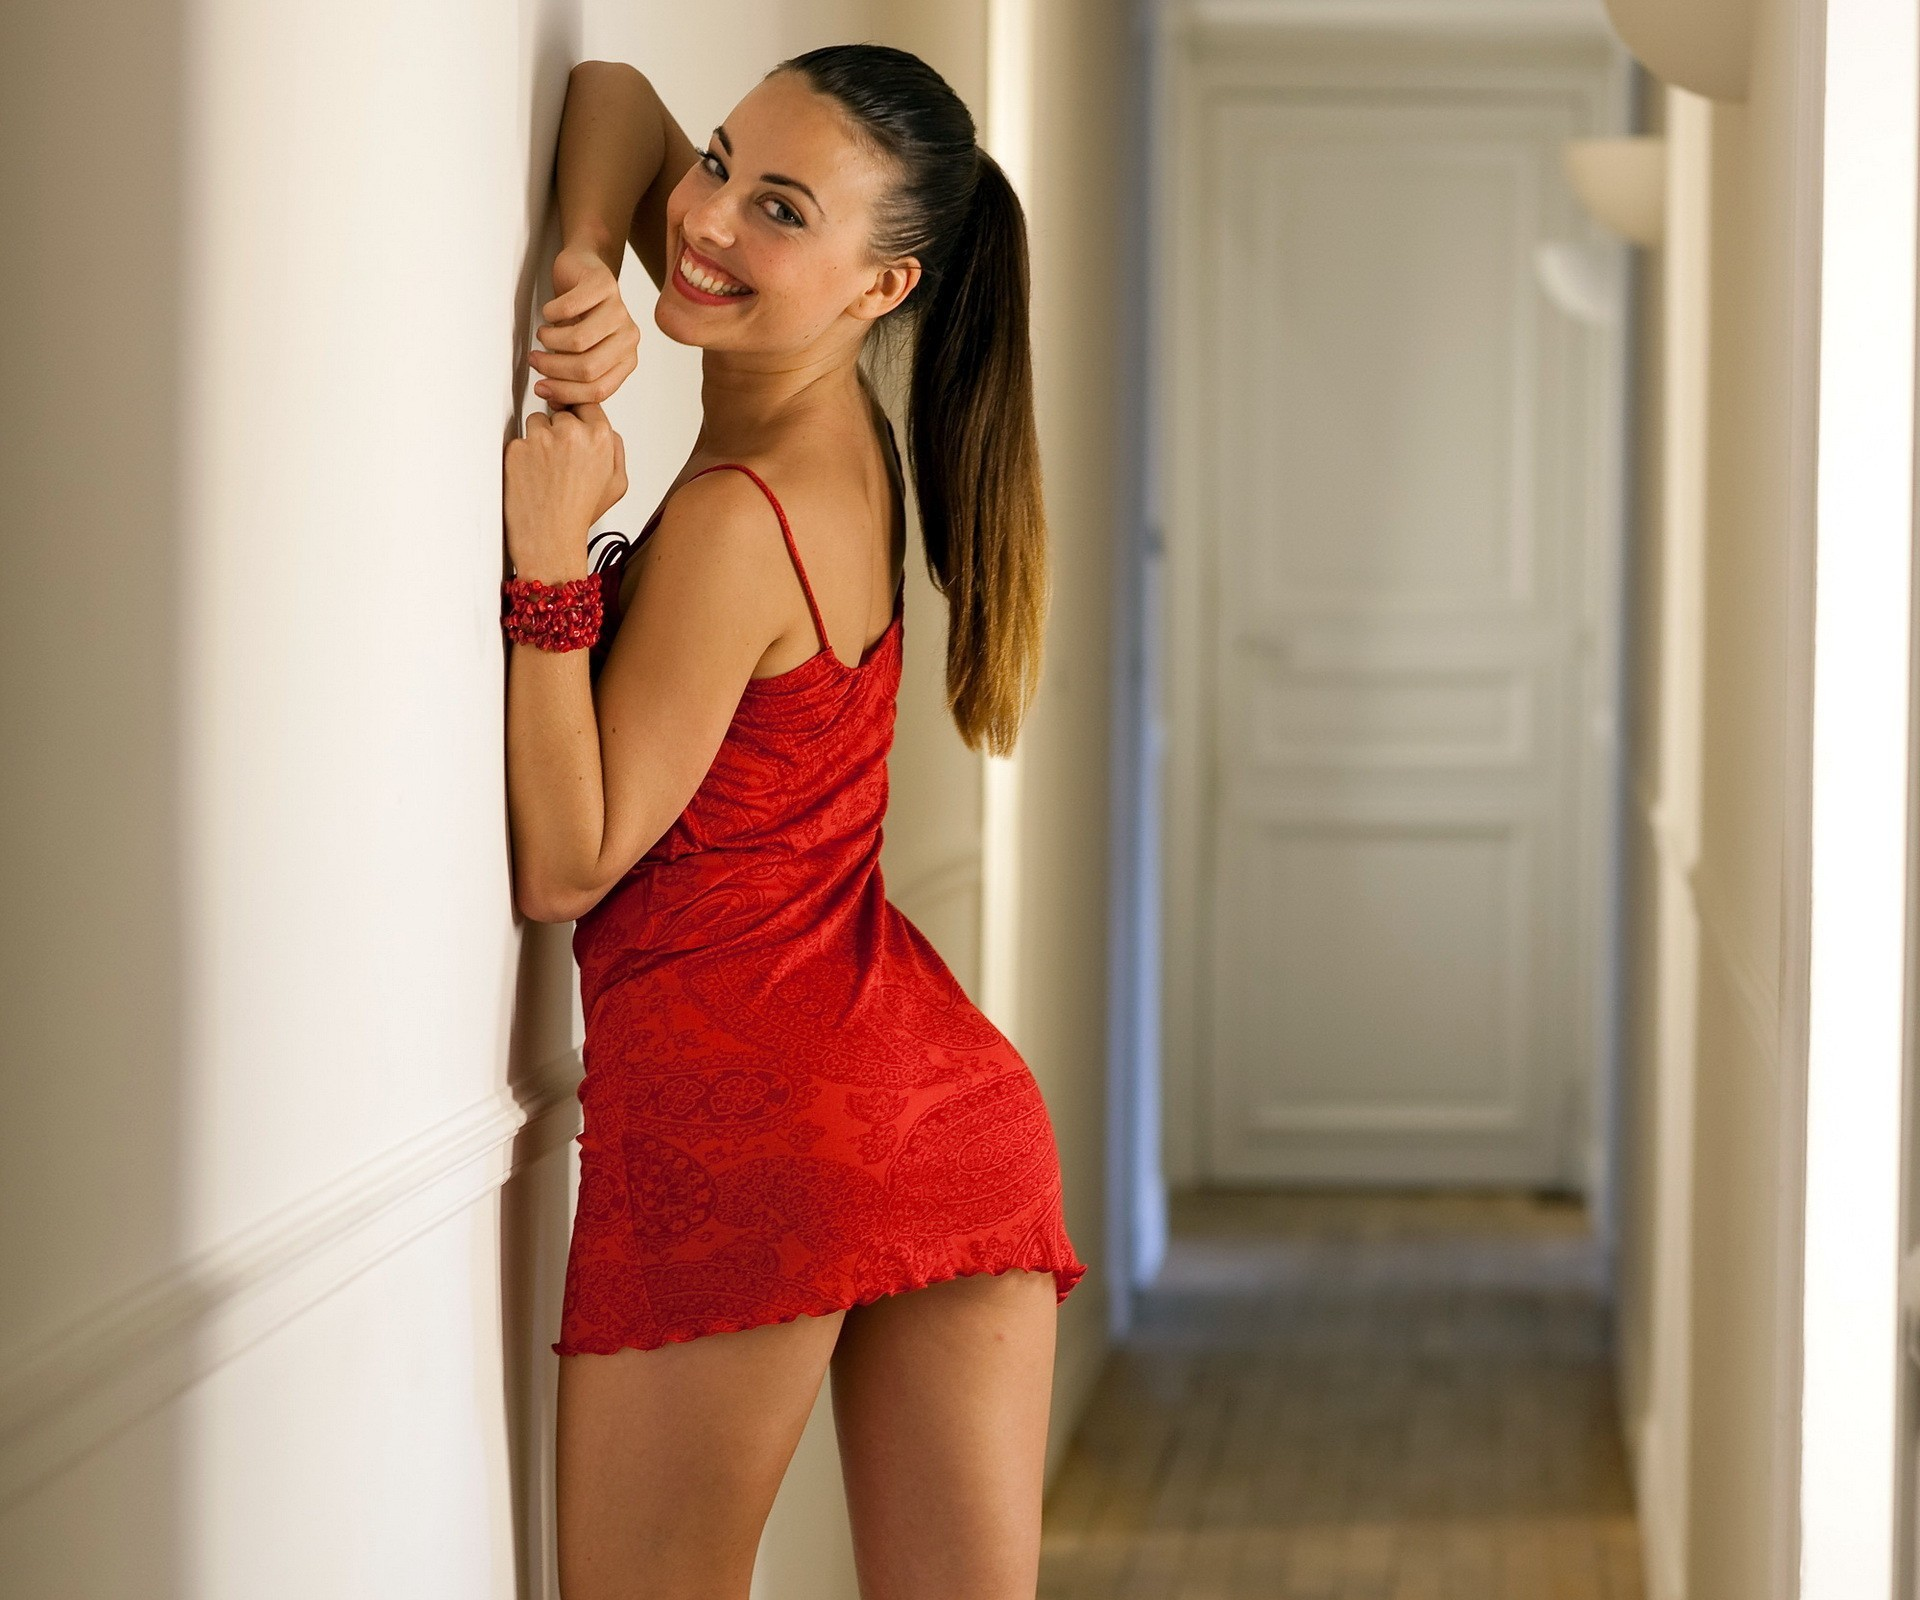 anal penetration for the appetitive brunette in the red dress  300169